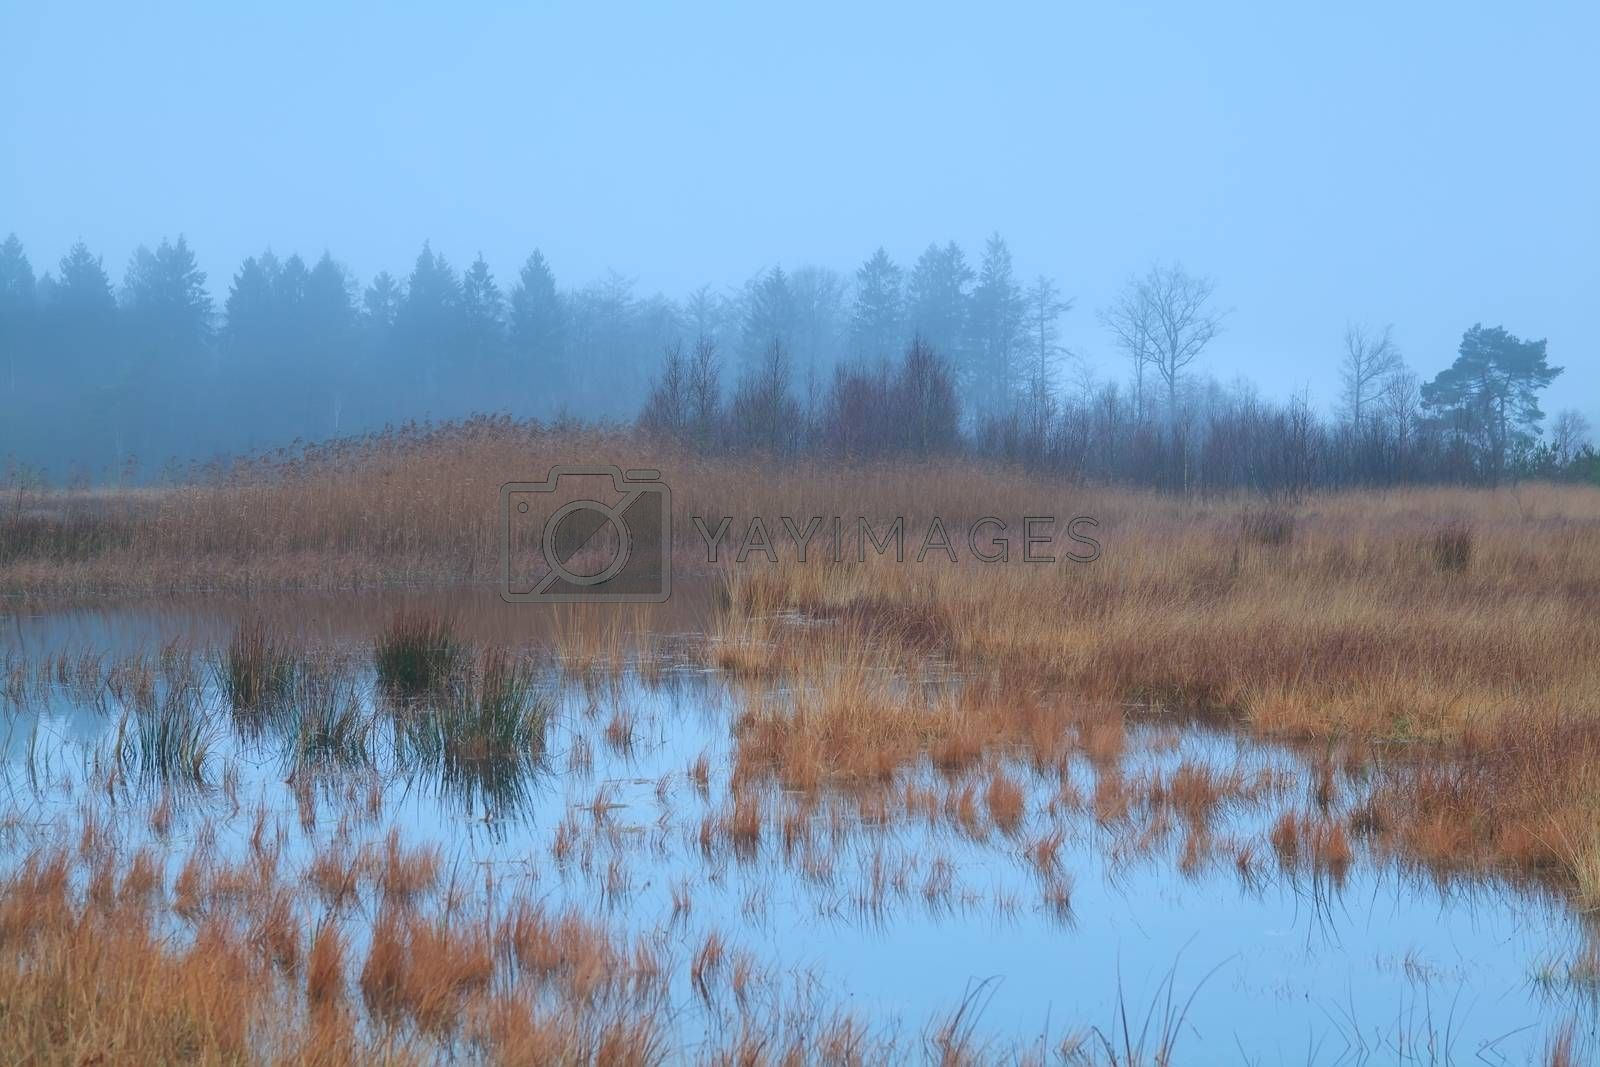 misty overcast weather on swamp, Mandefijld, Friesland, Netherlands